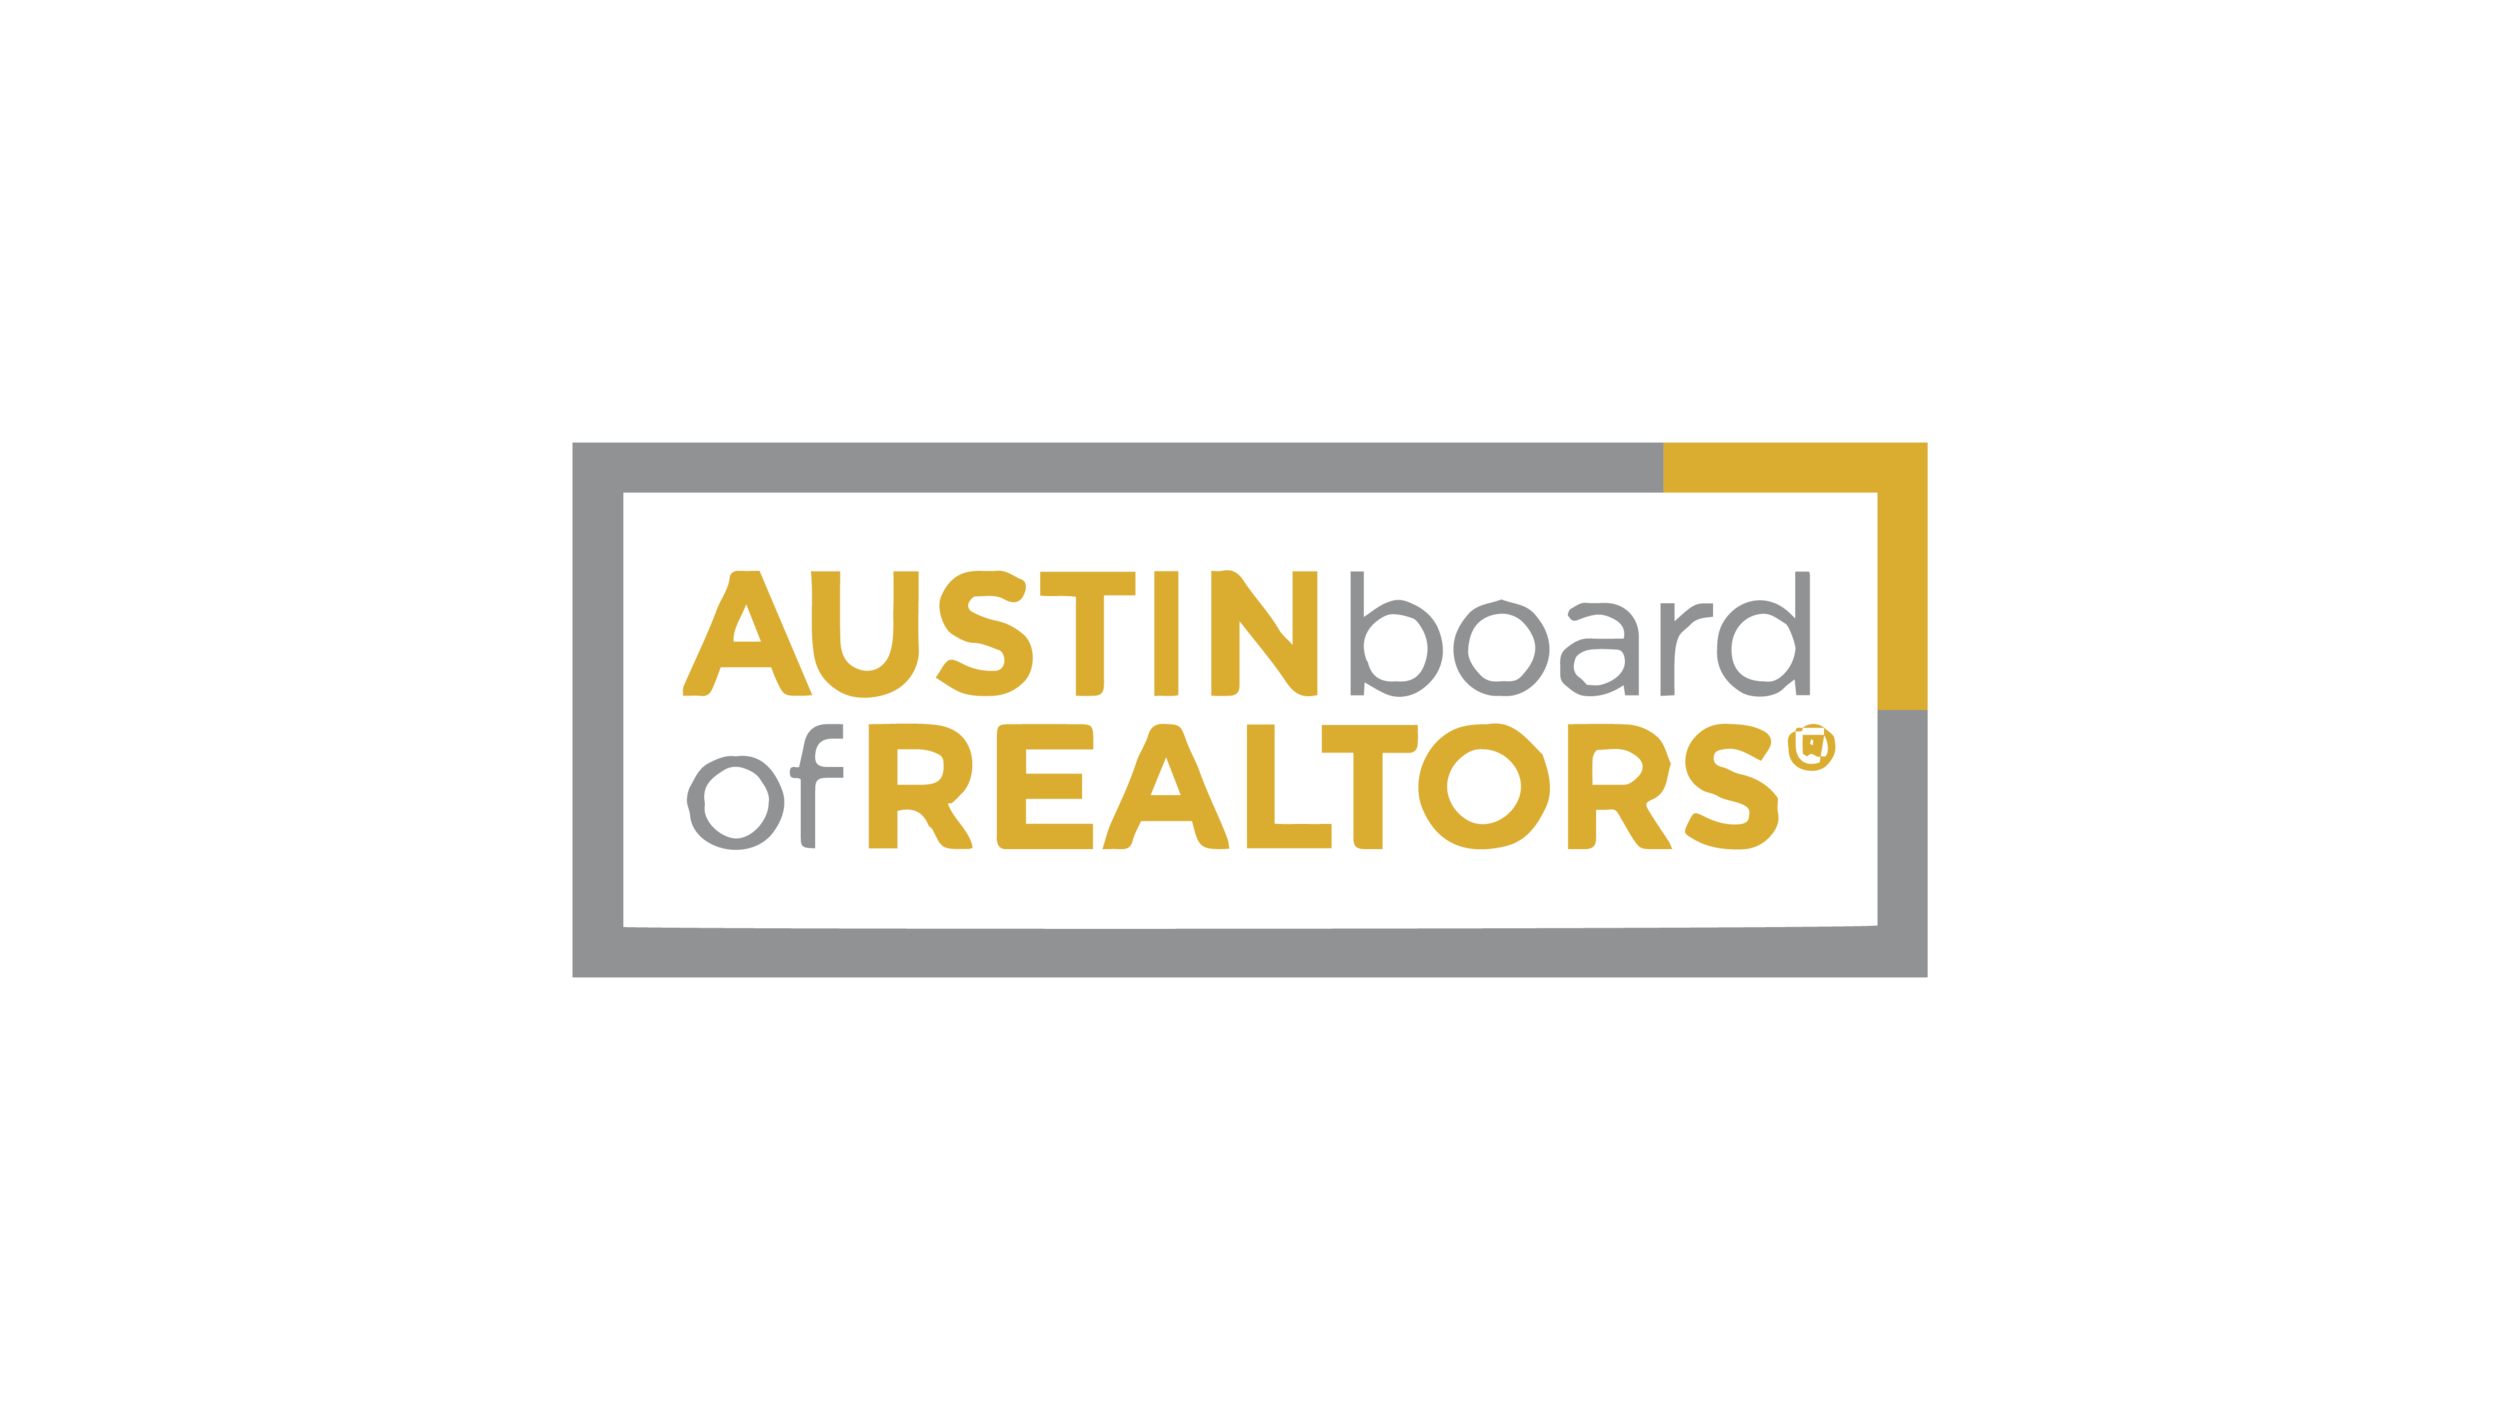 Austin Board of Realtors-17.png